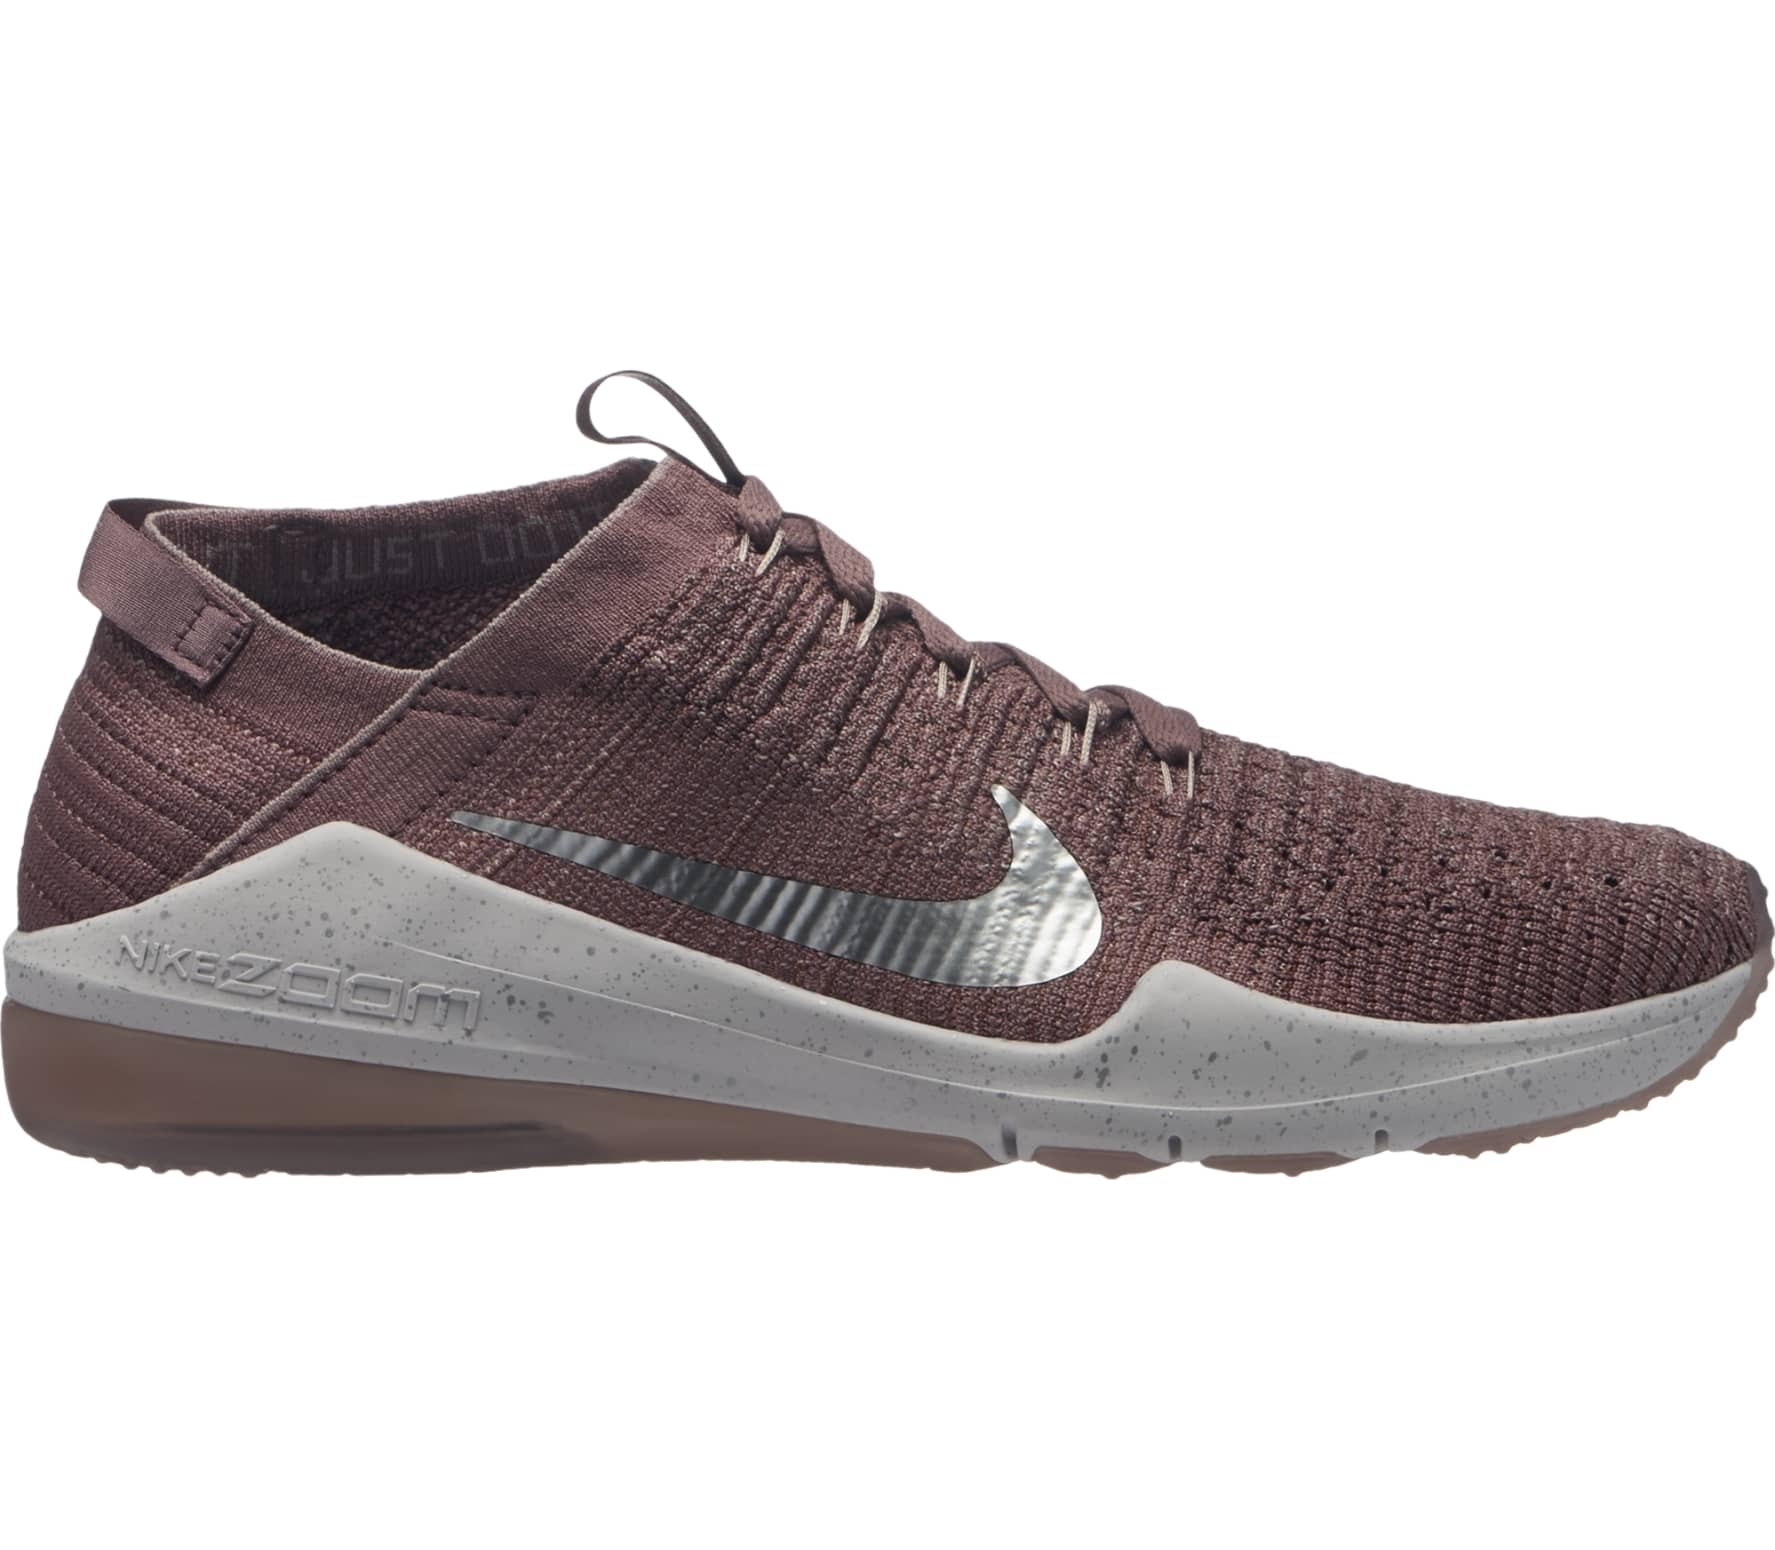 d948ddd6243 Nike - Air Zoom Fearless Flyknit 2 LM women s training shoes (brown ...